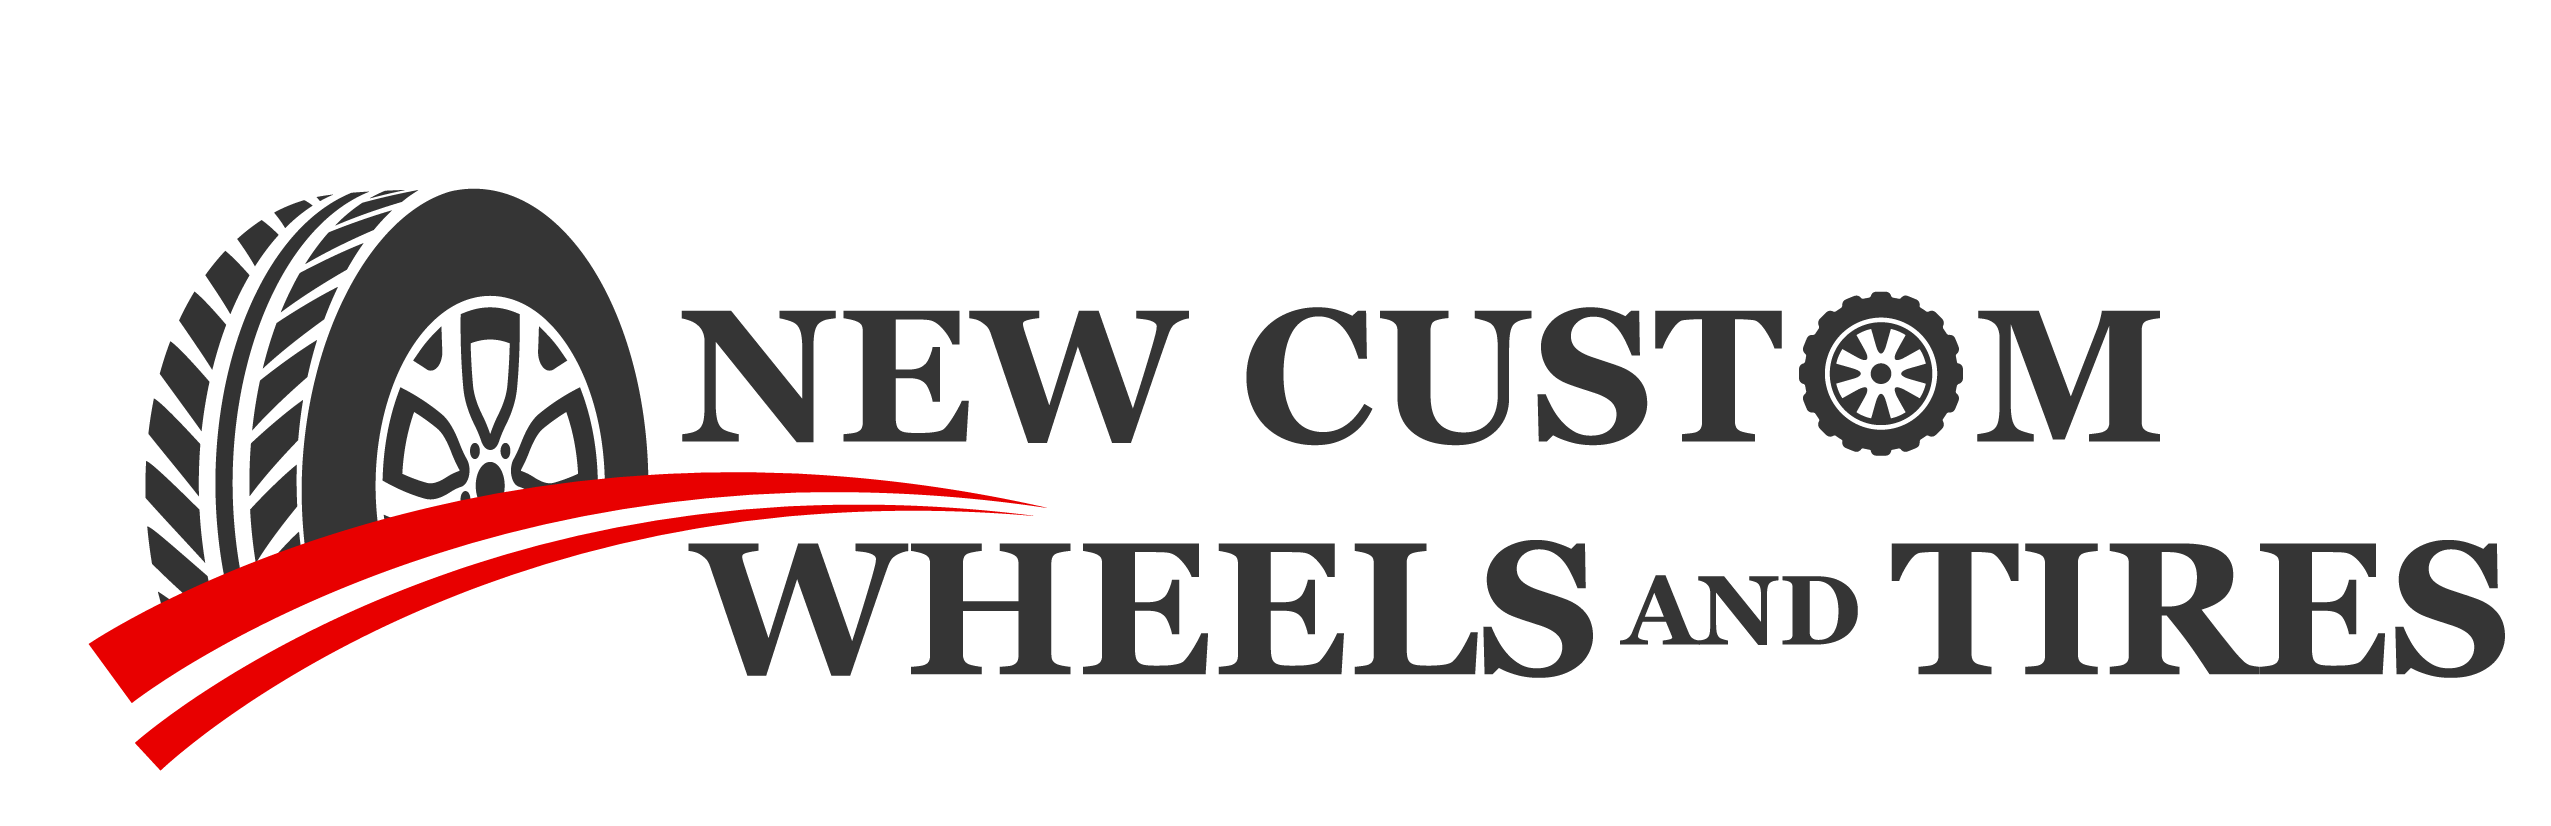 My Custom Rims